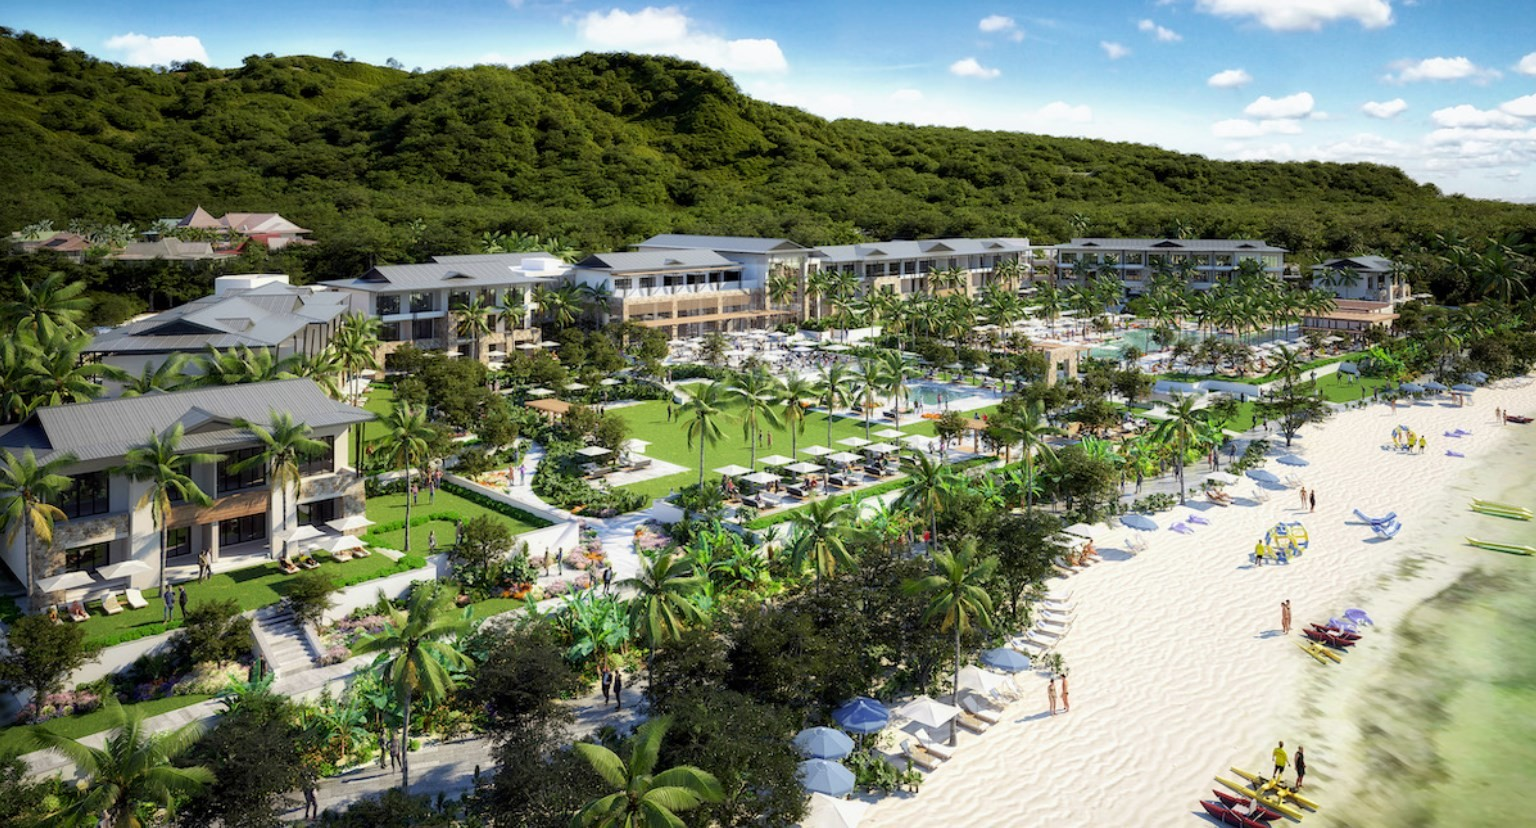 news-main-waldorf-astoria-and-canopy-by-hilton-to-debut-in-the-seychelles.1612525930.jpg